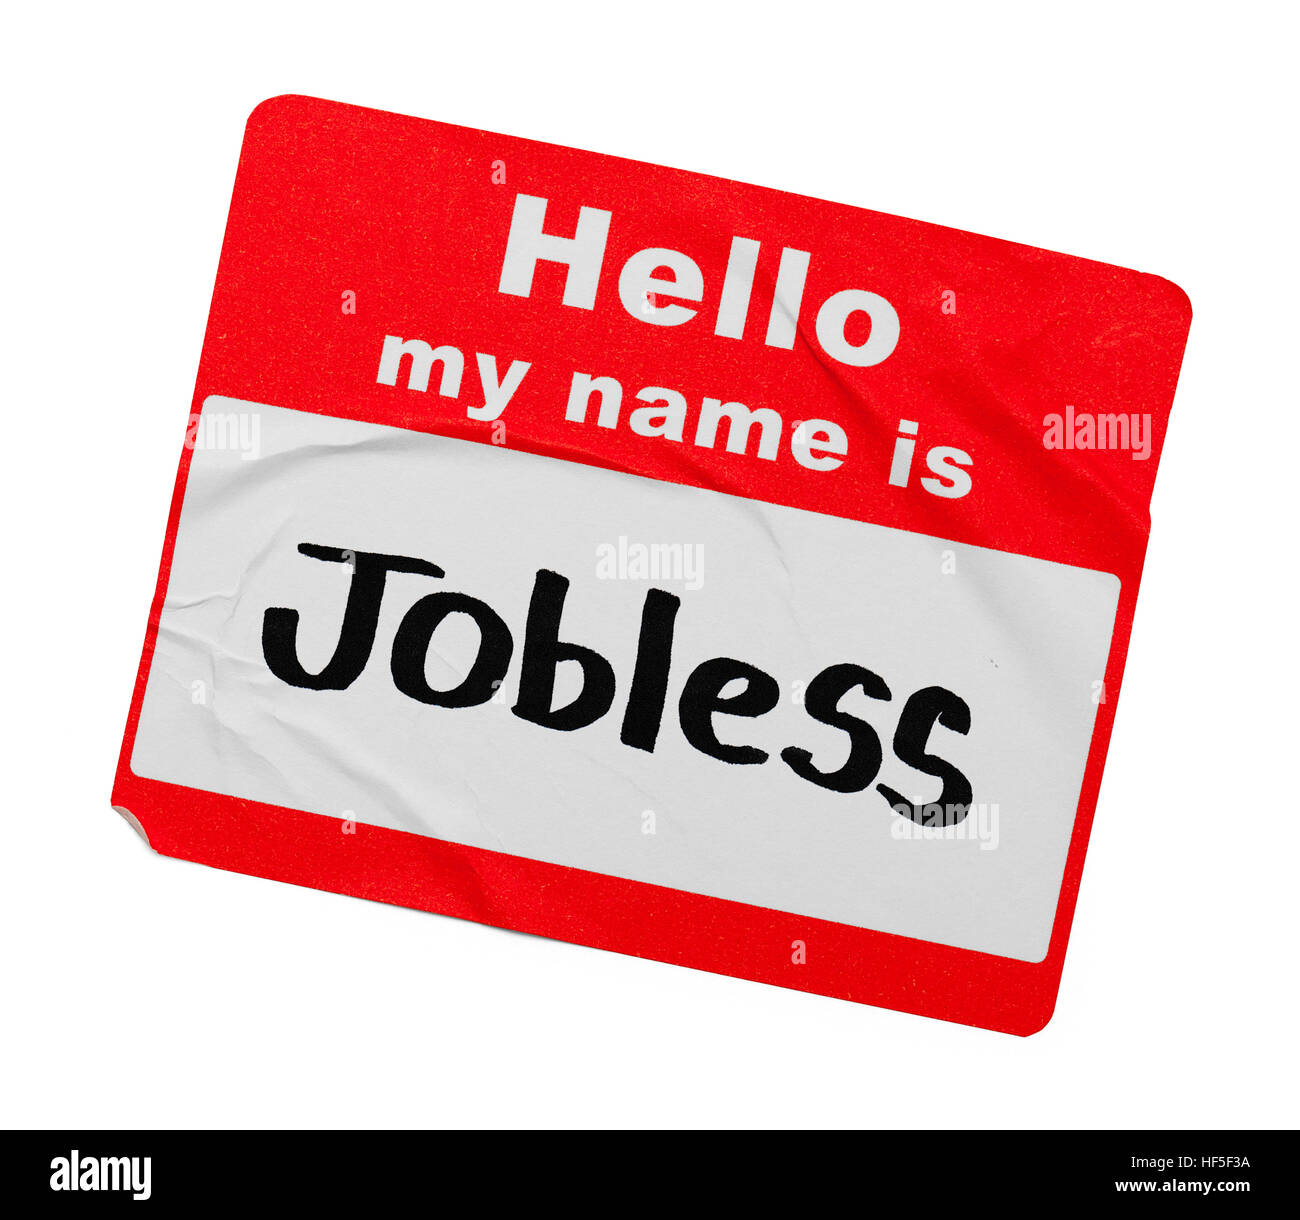 Hello My Name Is Jobless Tag Isolated on White Background. Tag Isolated on White Background. - Stock Image